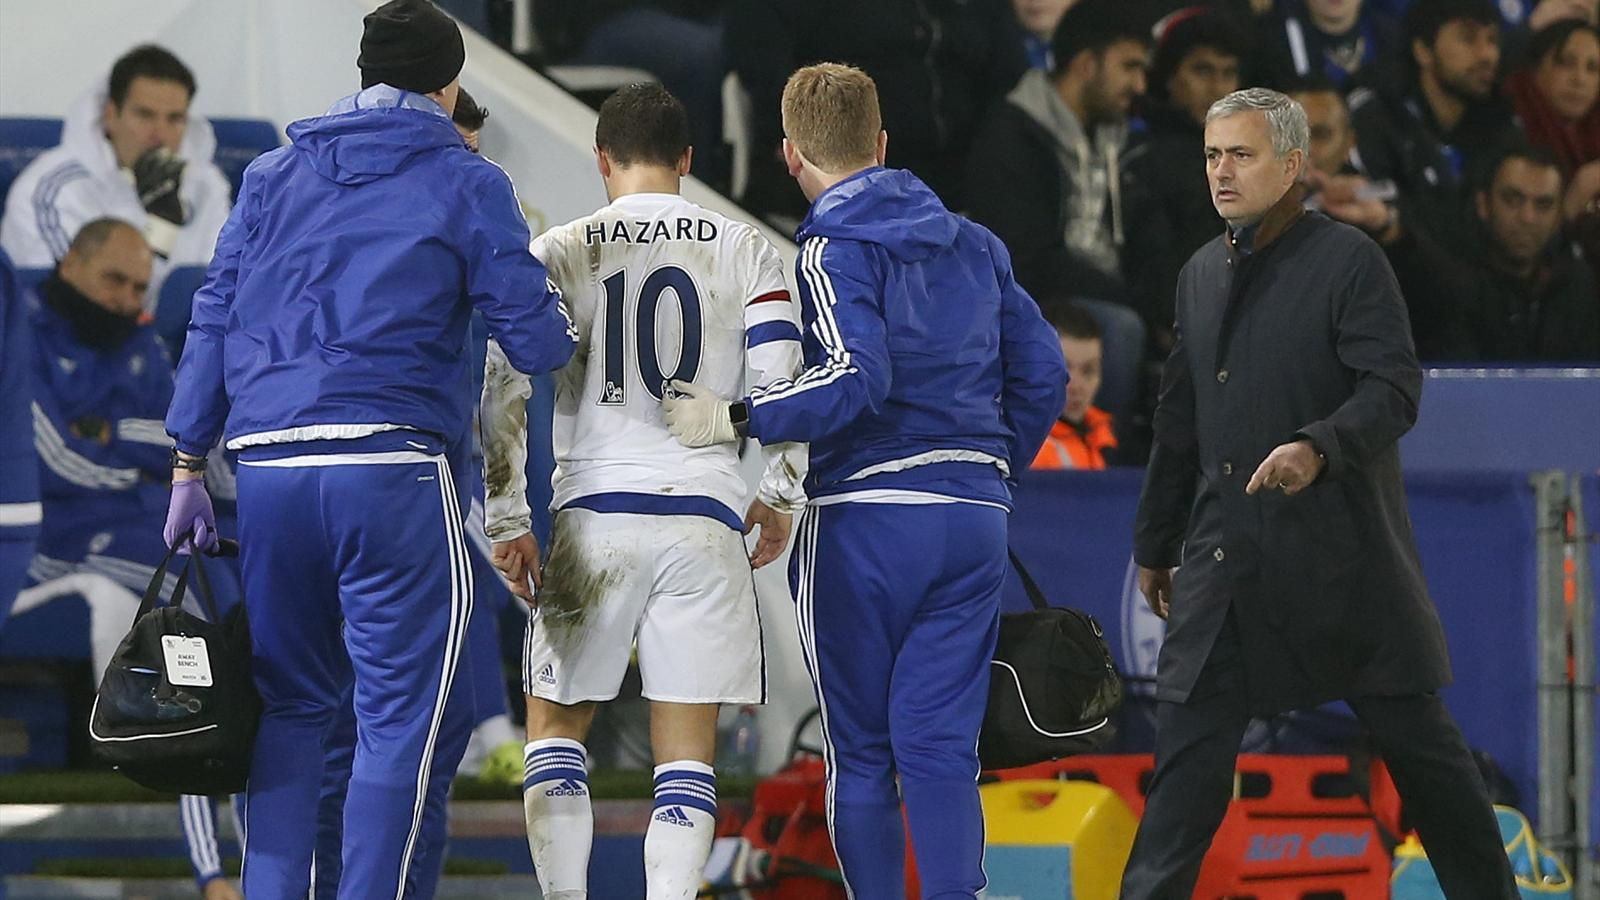 Chelsea's Eden Hazard goes off injured as manager Jose Mourinho looks on